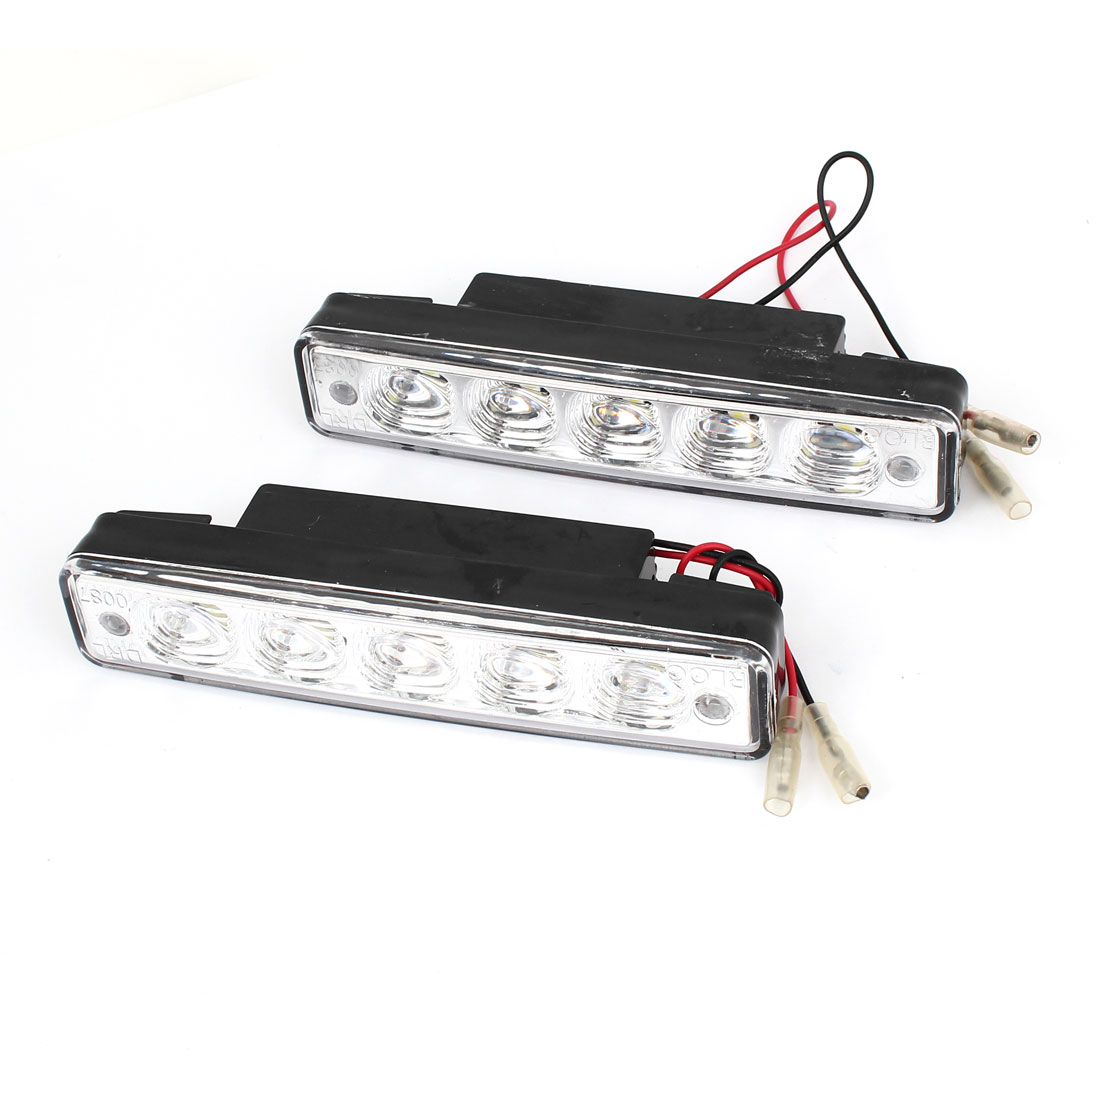 2 Pcs Plastic Shell Car White 5-LED DRL Daytime Running Light Driving Lamp 12V